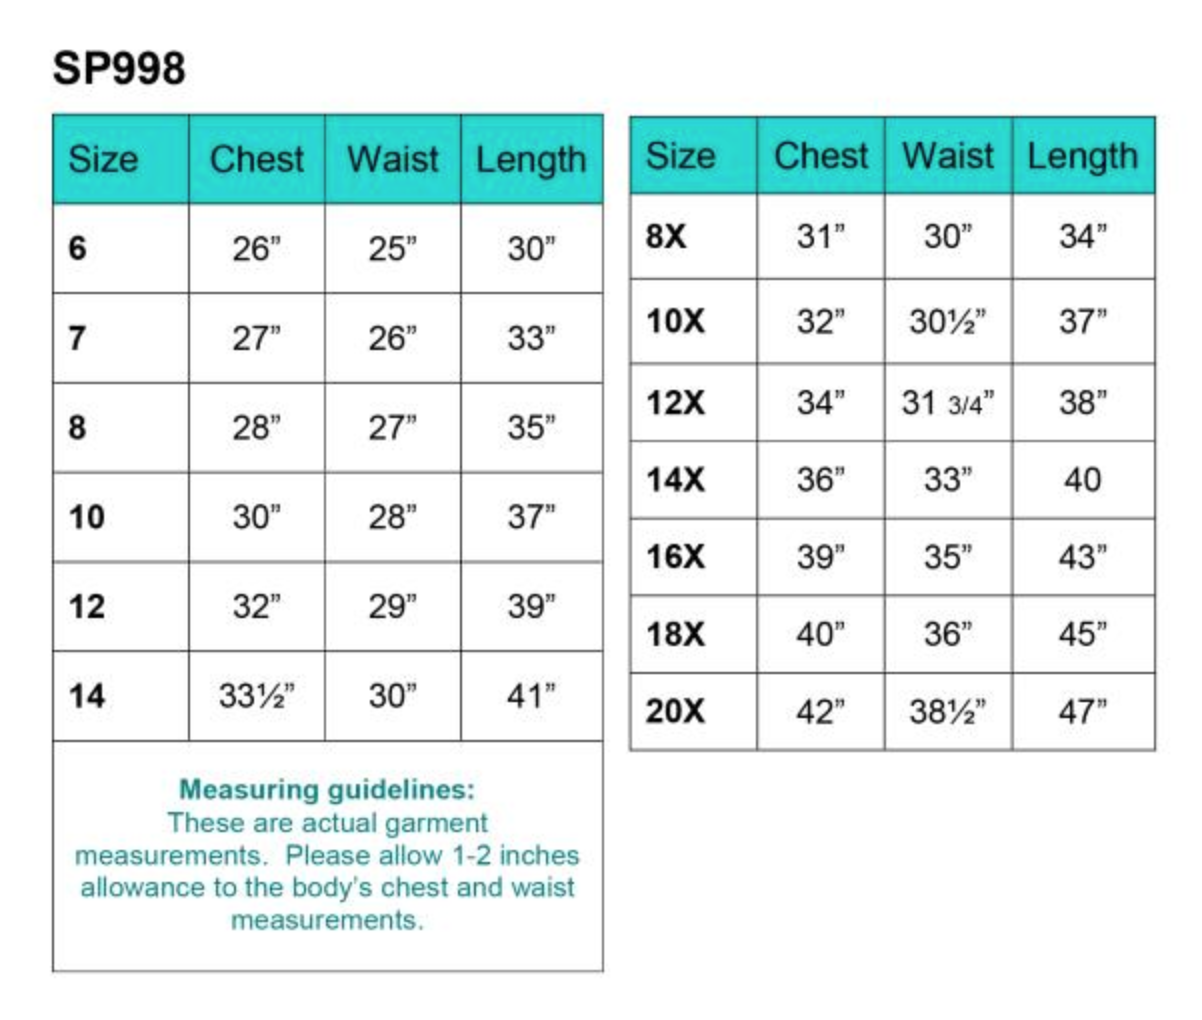 sizing-chart-sp998.png